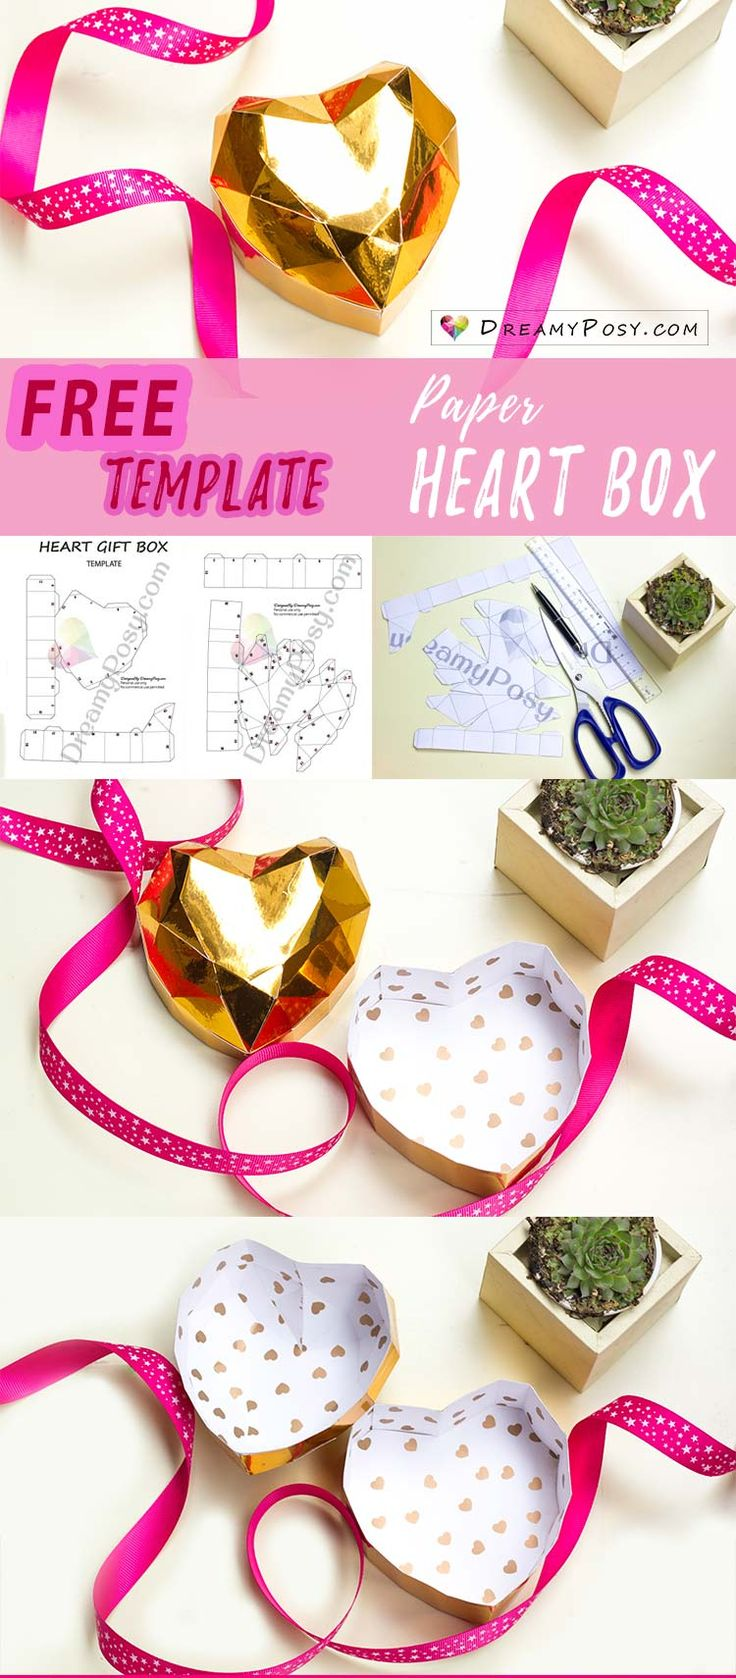 Make your 3D heart box for Valentine's Day with my free template, just more than 1 hour to complete. So easy and you could custom your size, color, theme...